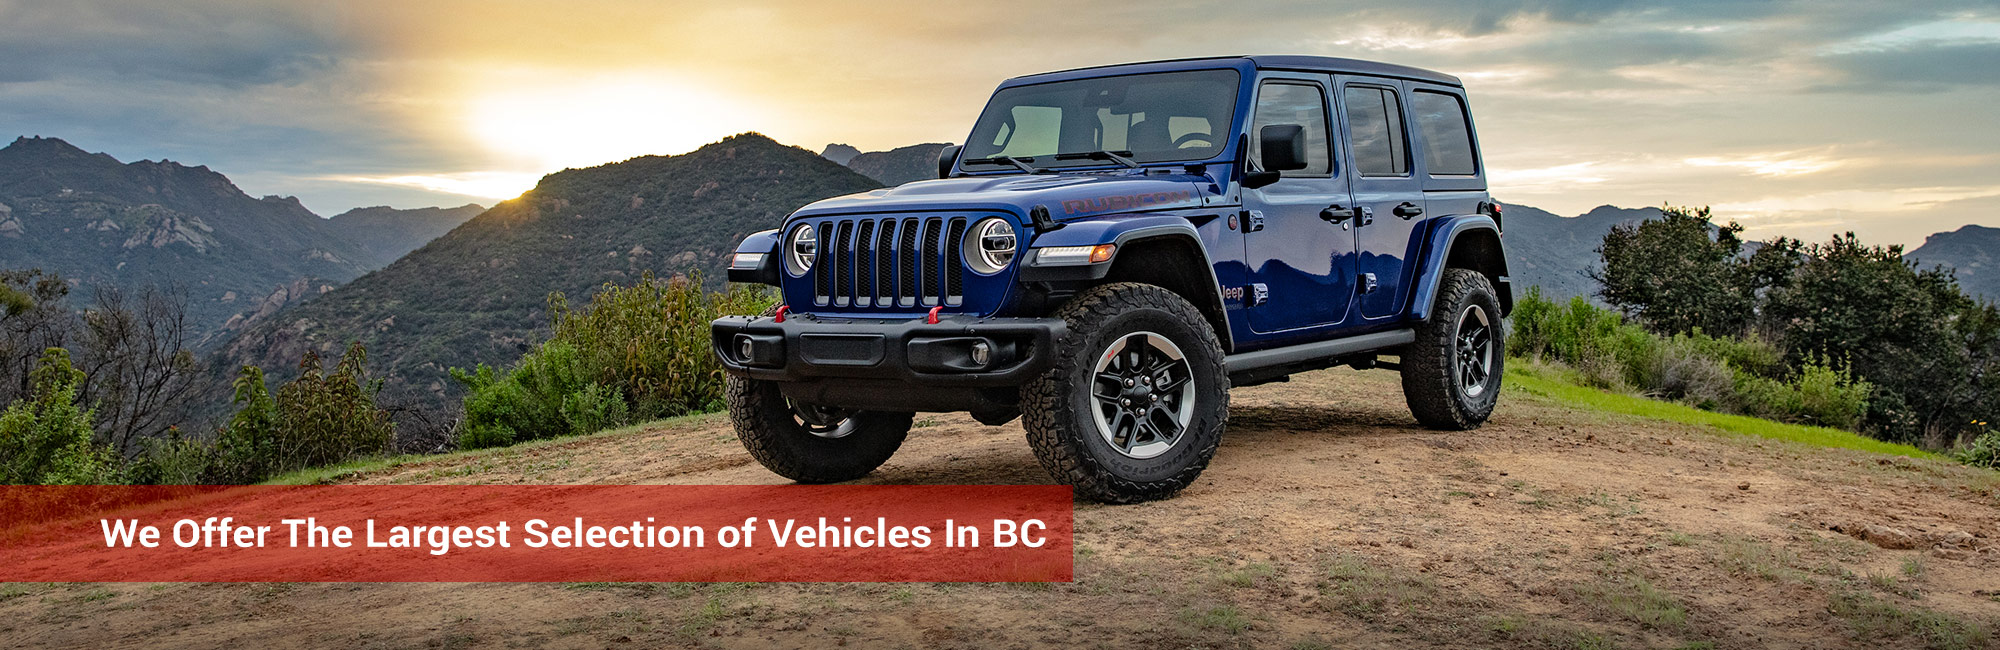 Pioneer Auto Group >> Pioneer Auto Group Mission British Columbia Mitsubishi Chrysler